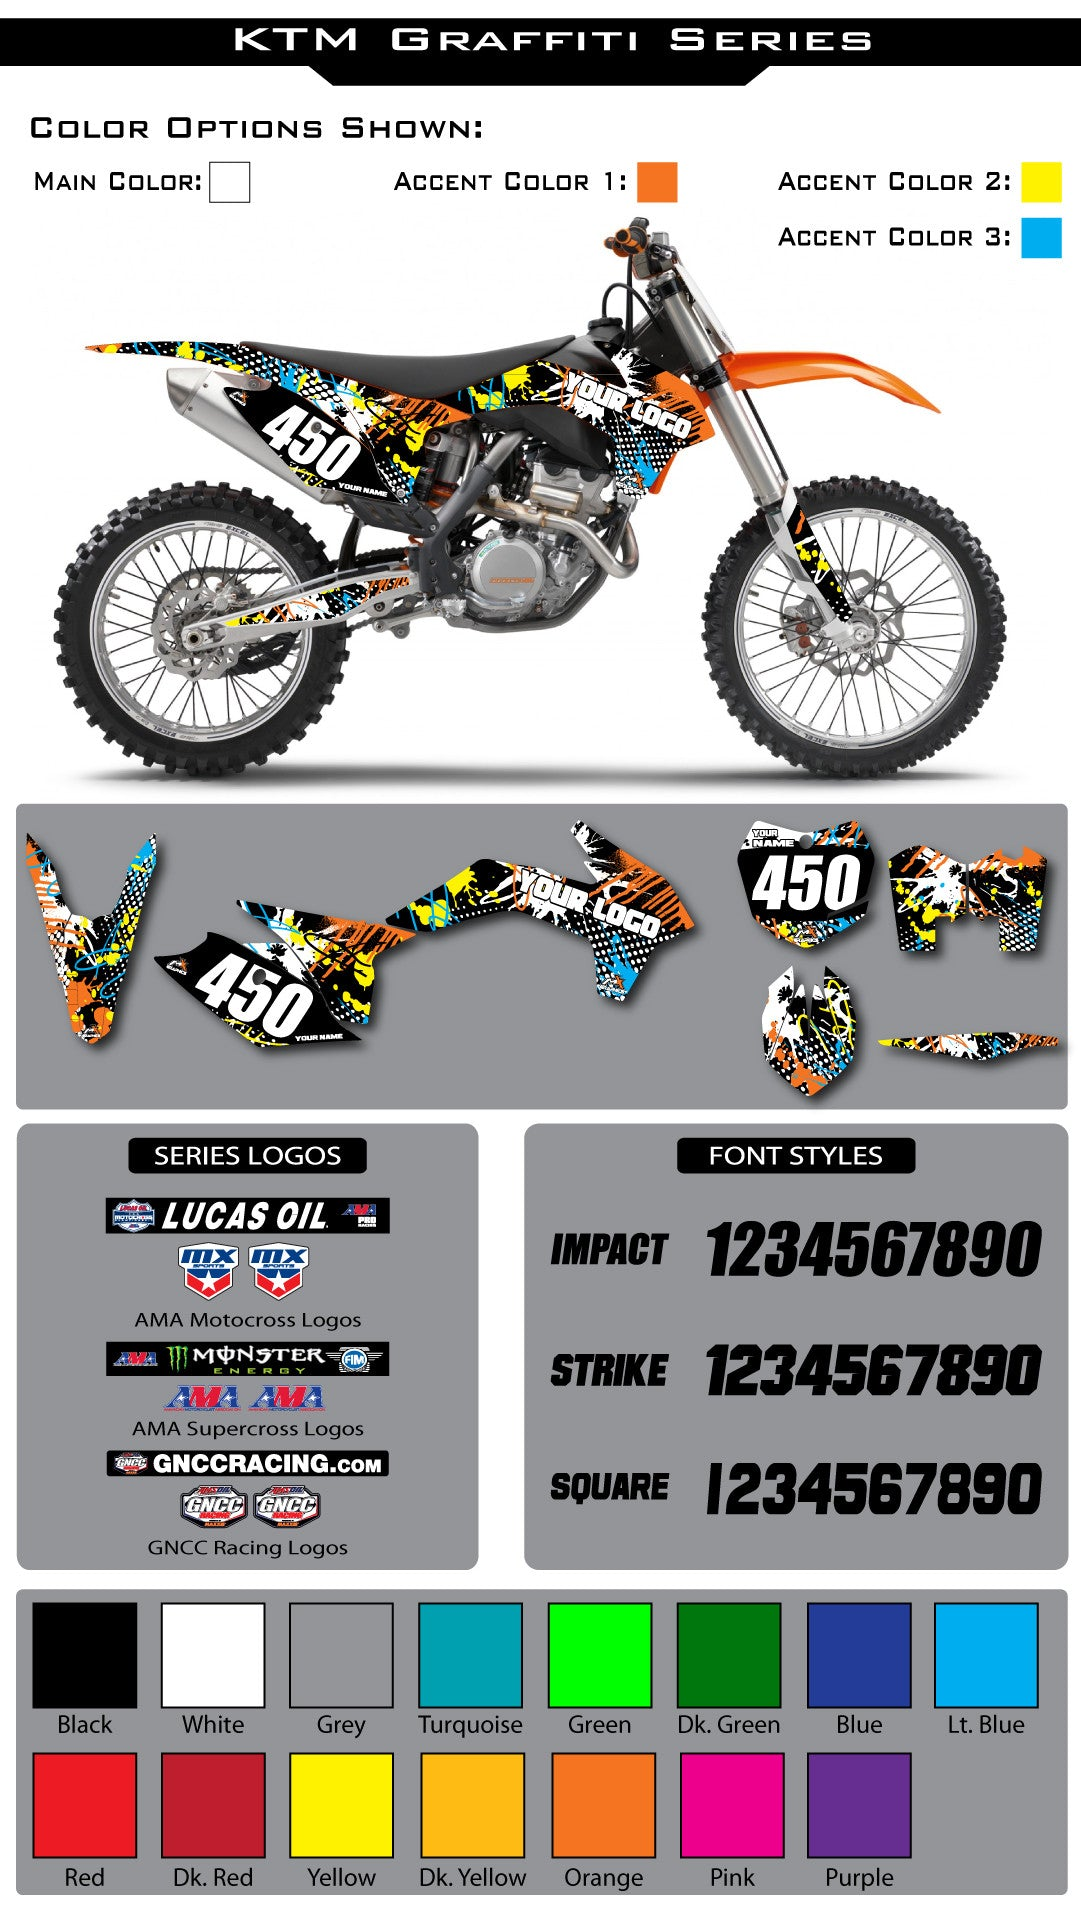 KTM Graffiti Graphic Kit